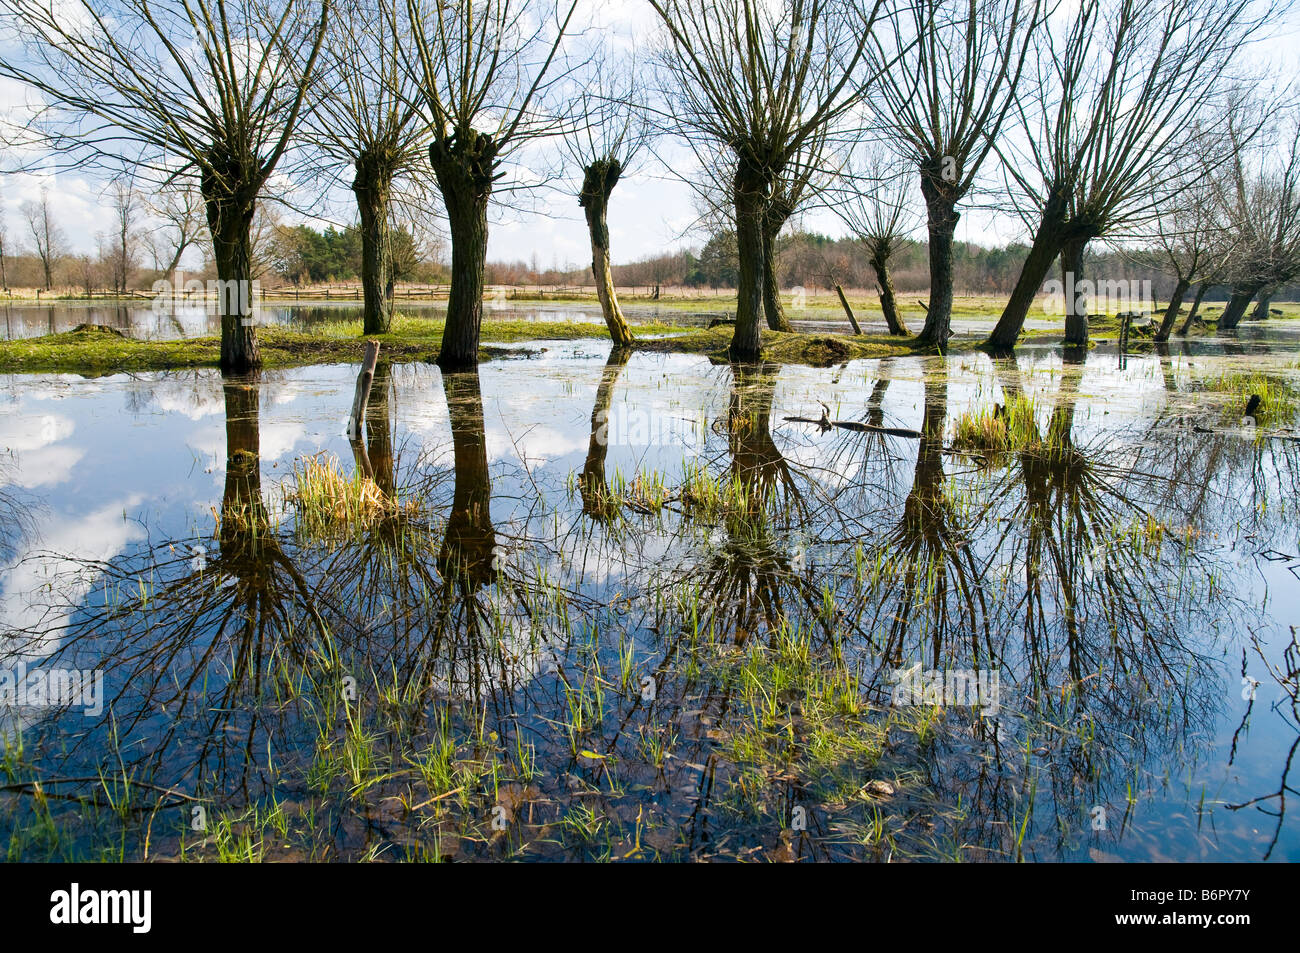 Landscape of willows in Kampinos National Park near Warsaw, Poland Stock Photo